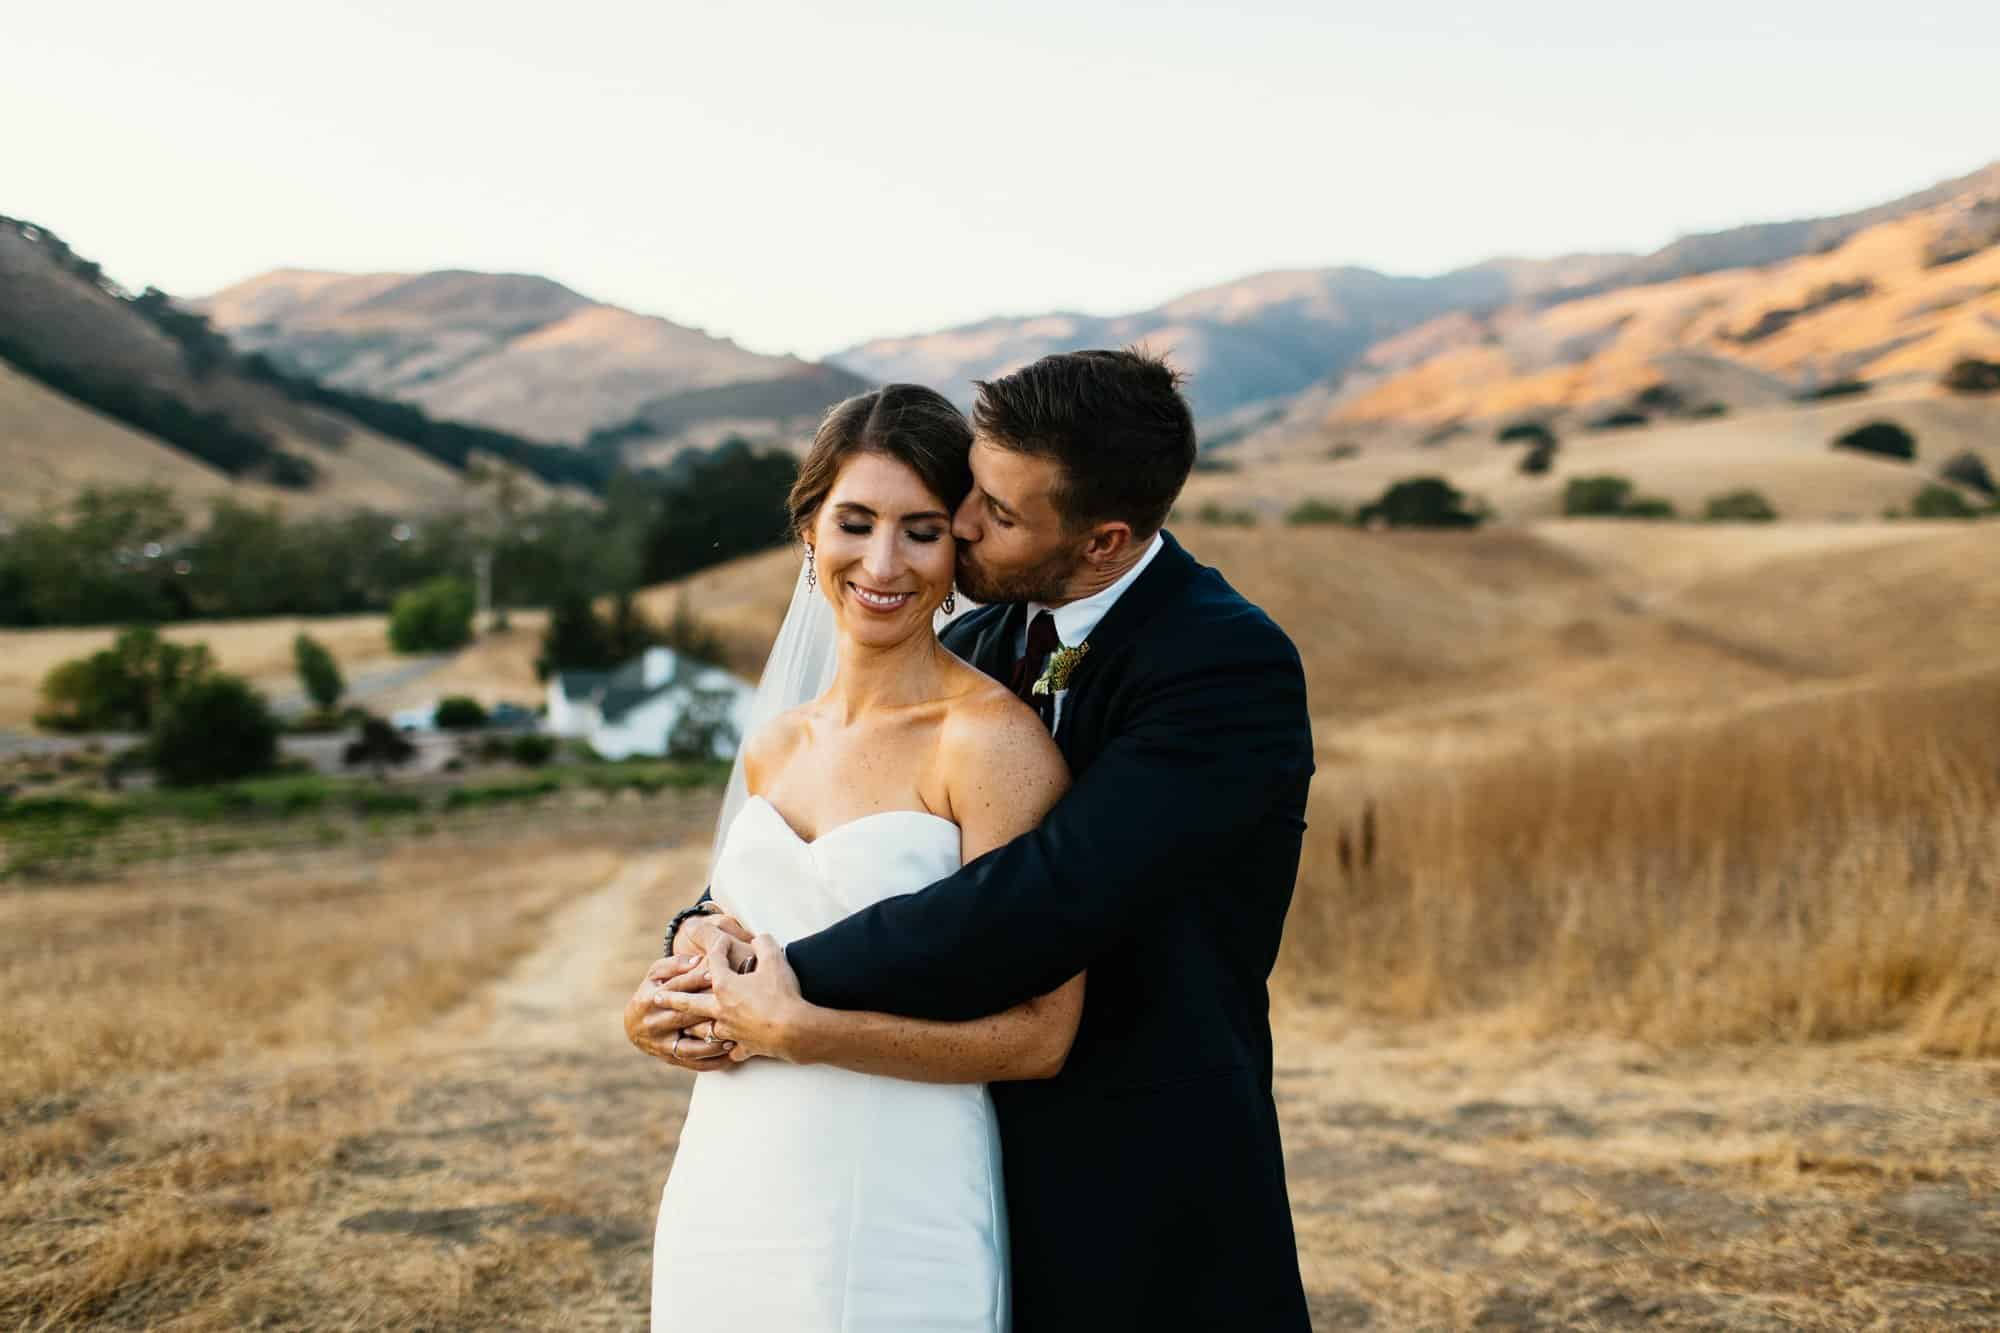 Higuera Ranch Weddings